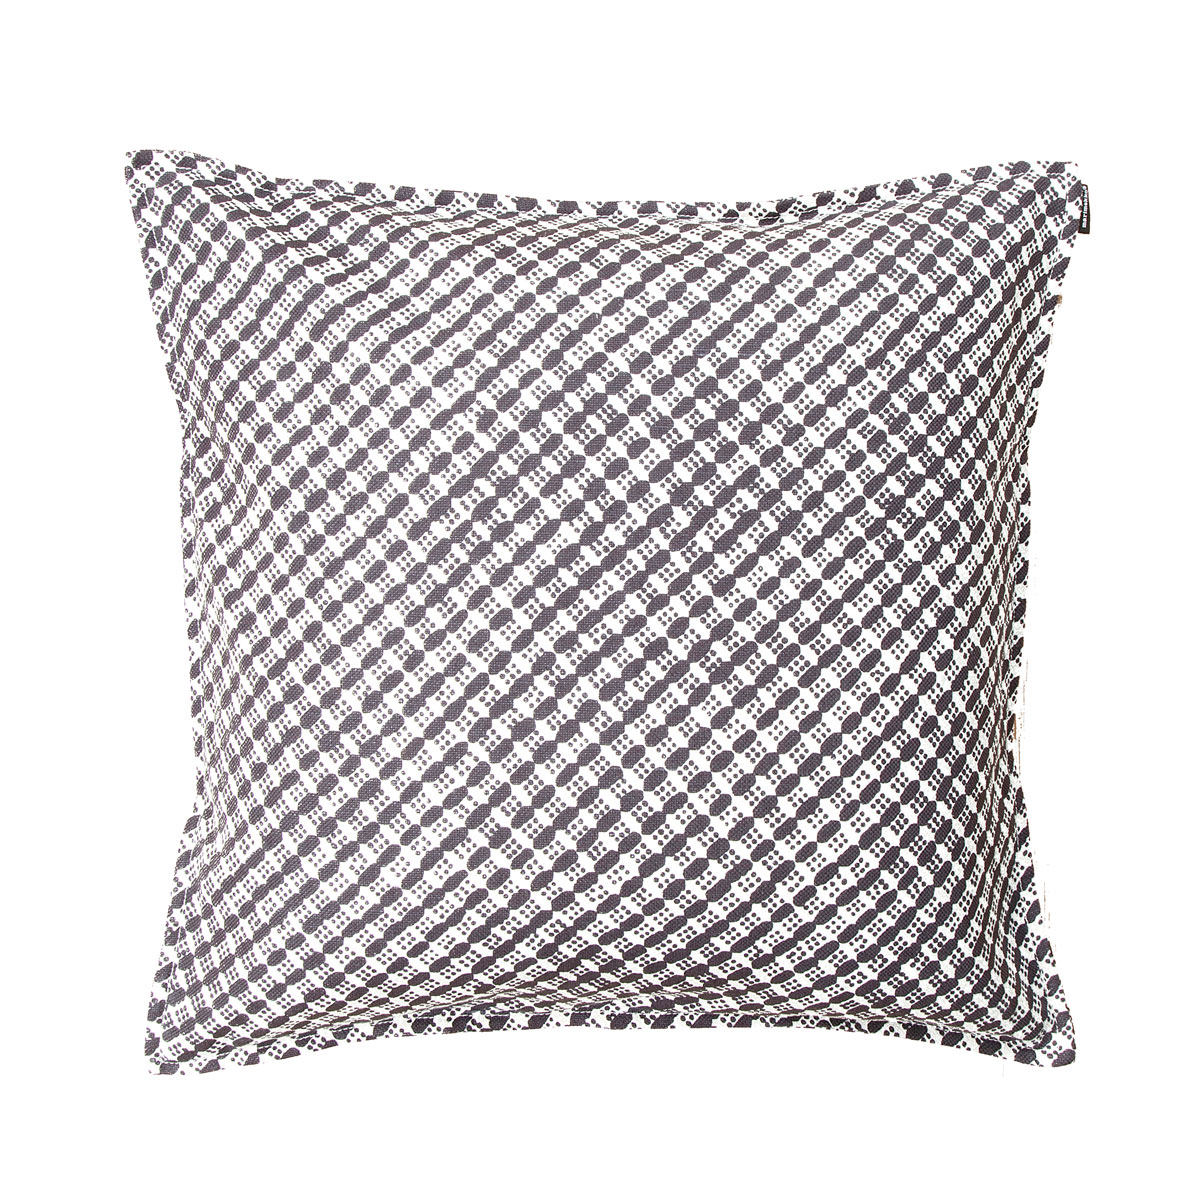 Marimekko Kopeekka Dark Grey Throw Pillow New Arrivals